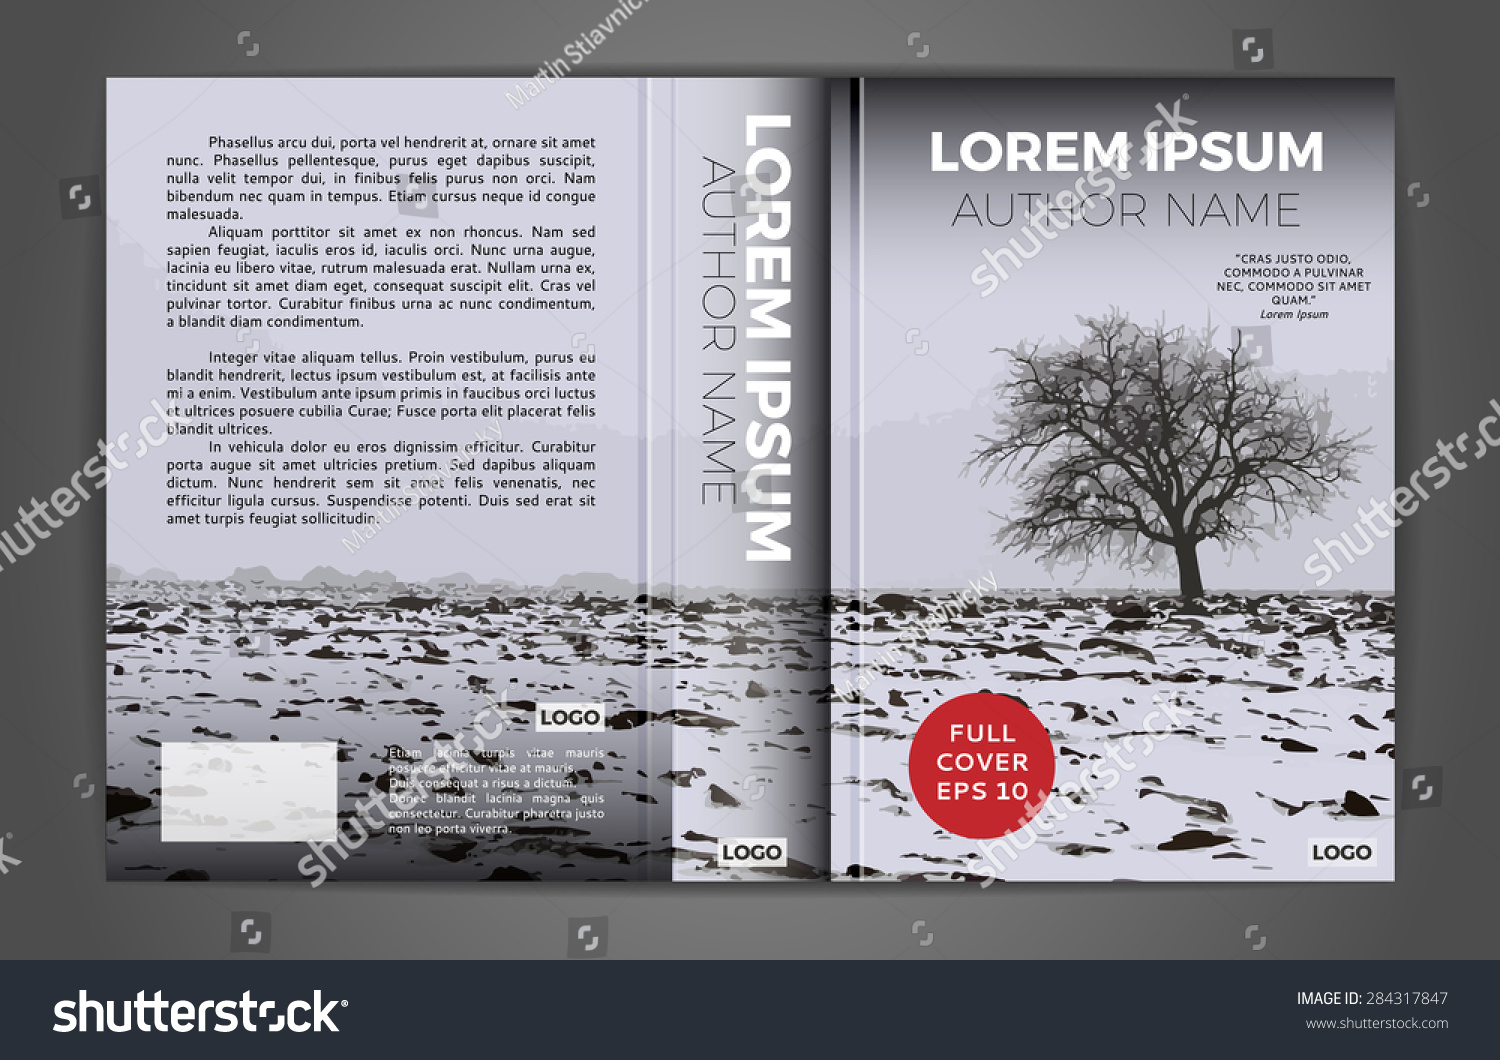 Full book cover design Vector